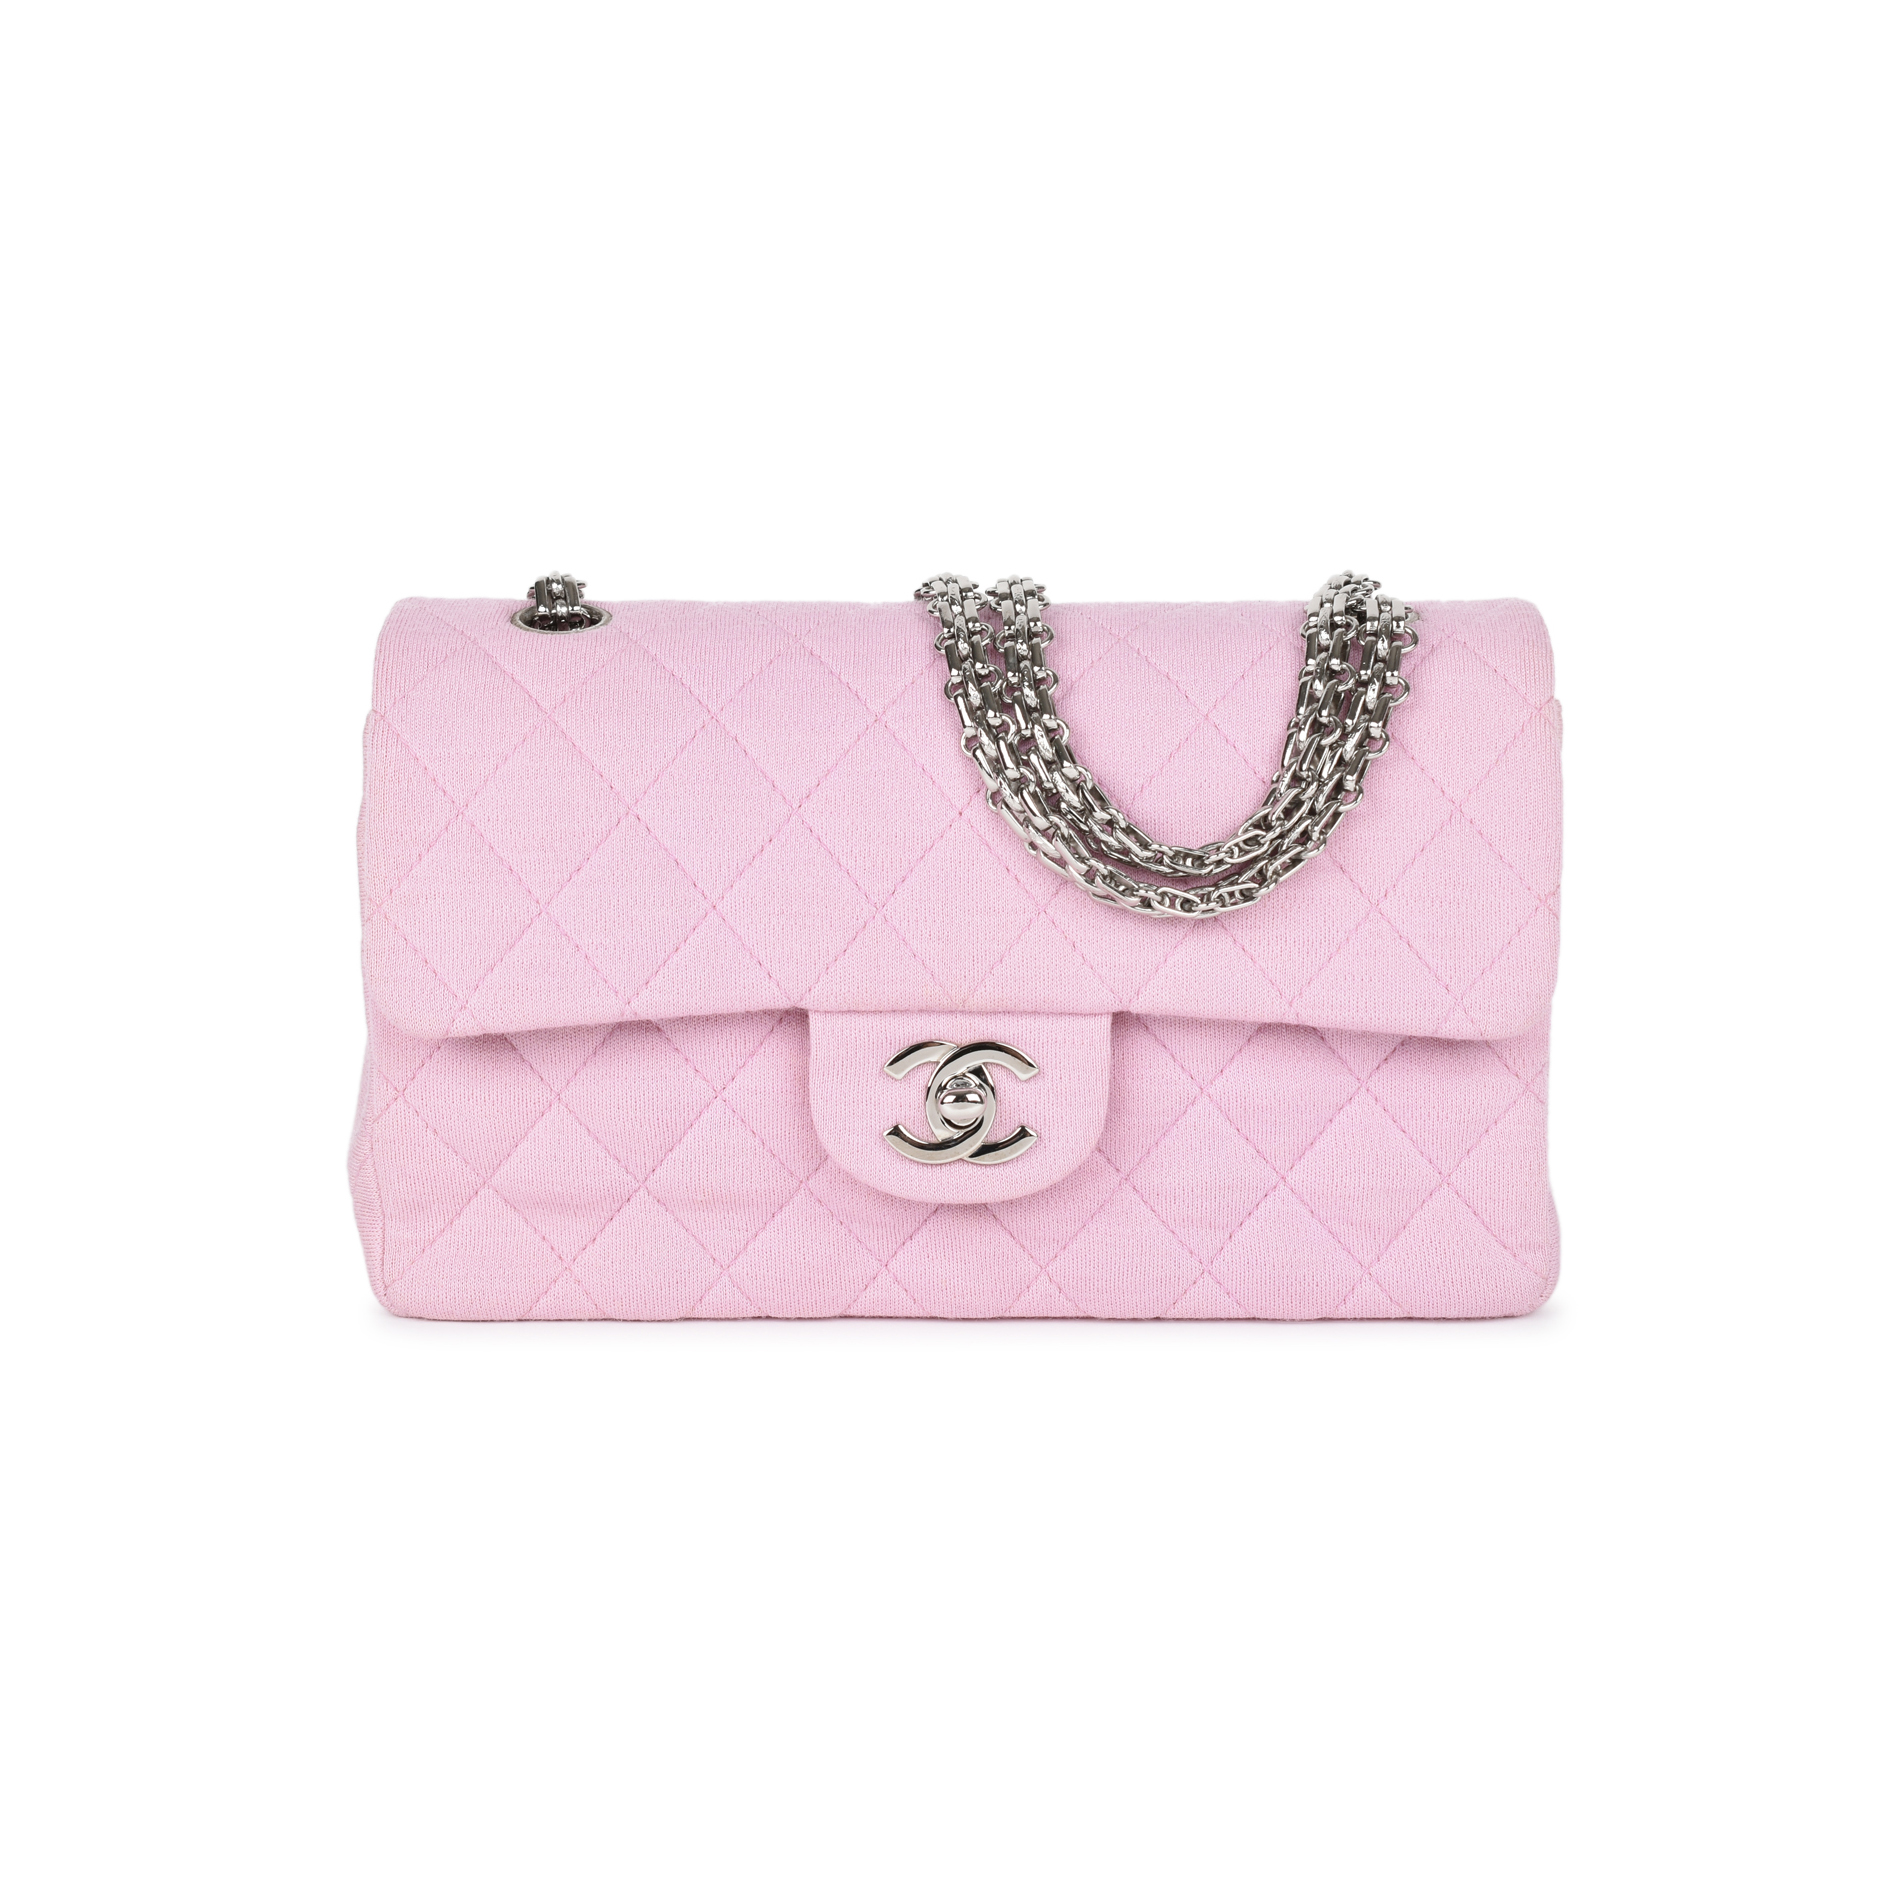 b45539b72d12 Authentic Second Hand Chanel Baby Pink Jersey Small Classic Flap Bag  (PSS-051-00374)